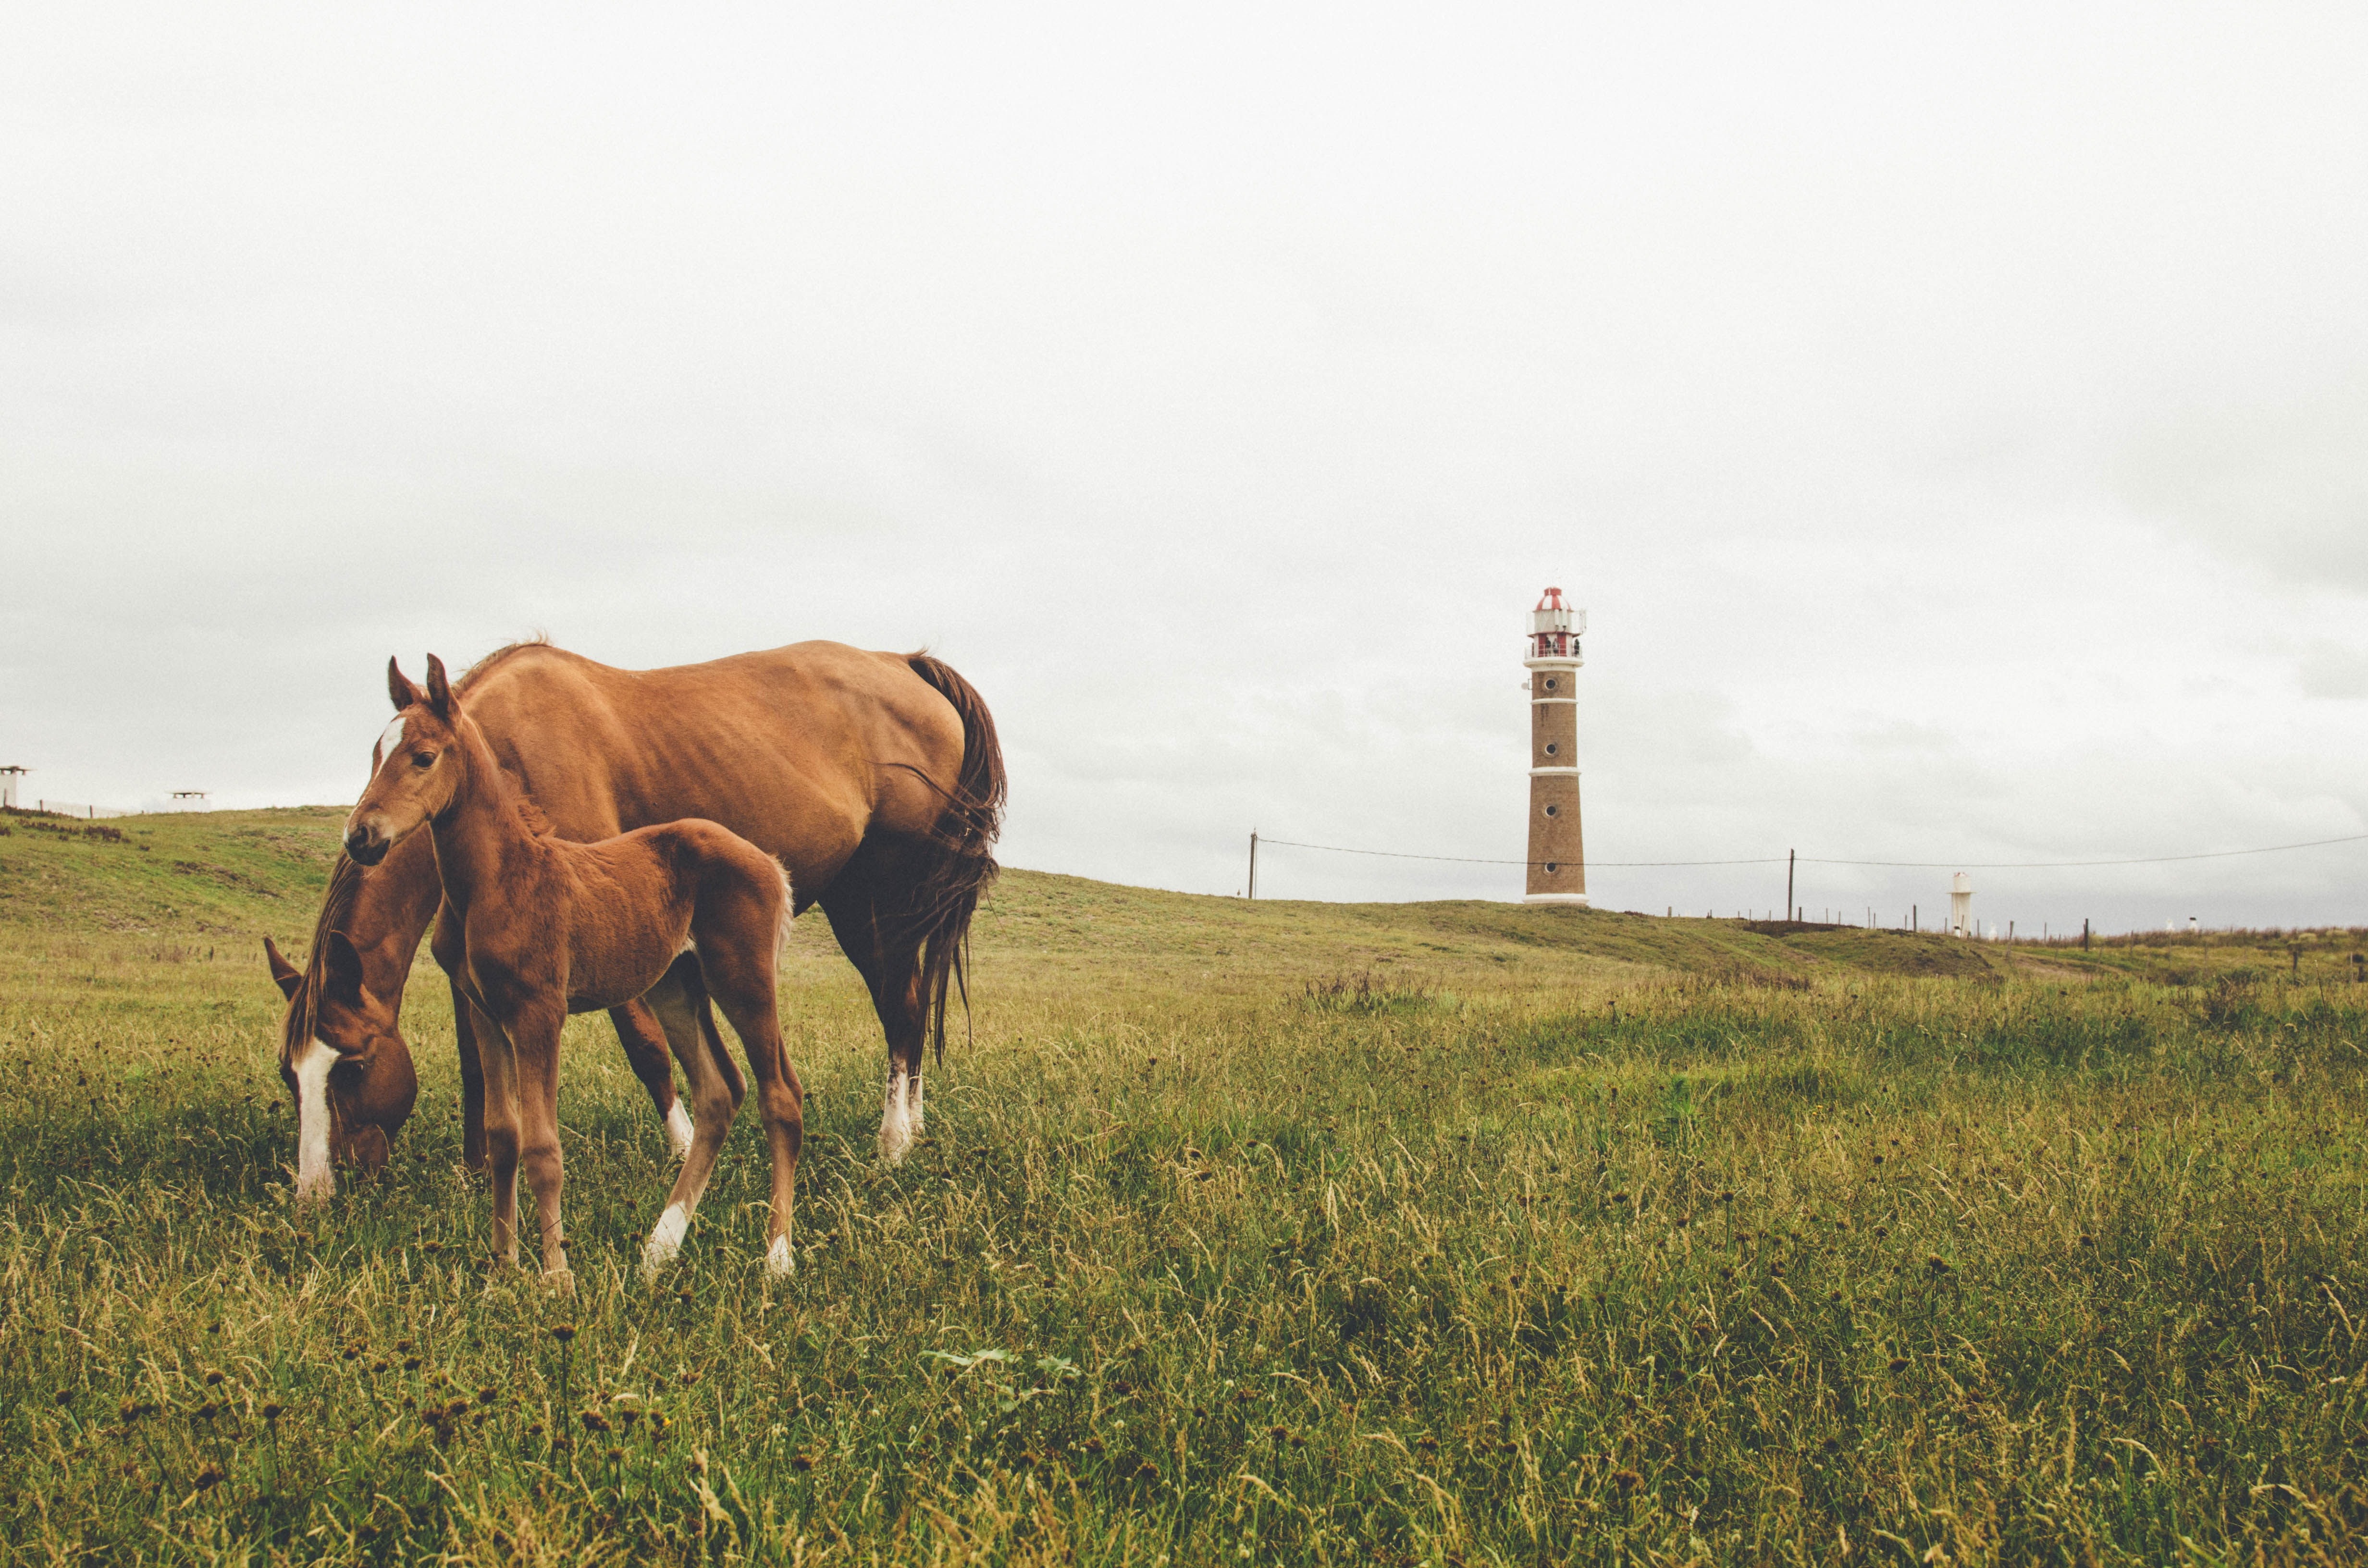 two brown horse and young horse on grass field